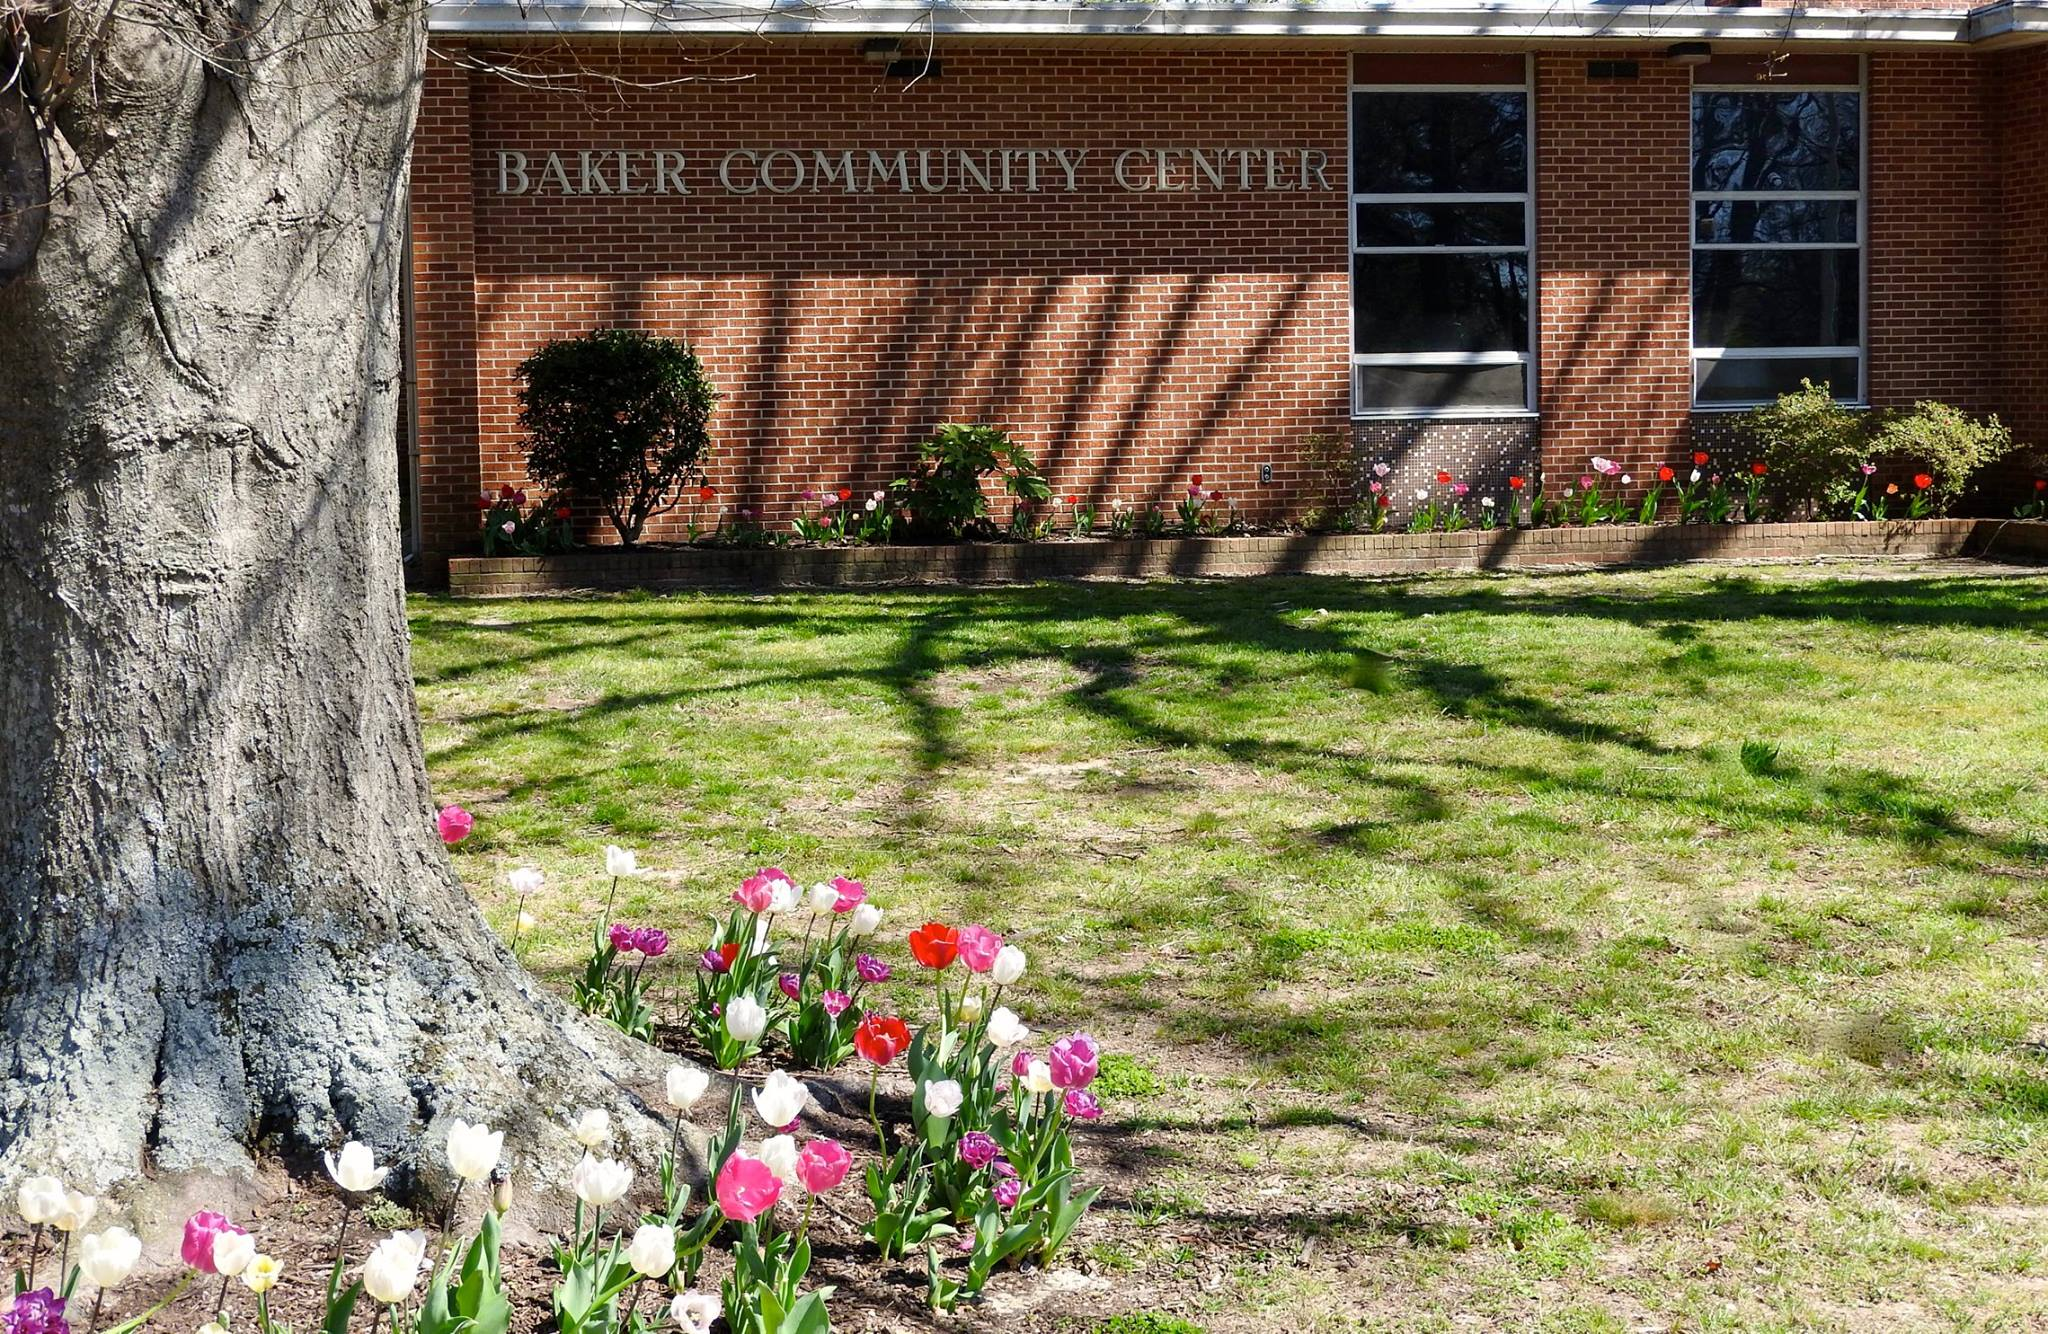 Baker Community Center Photo